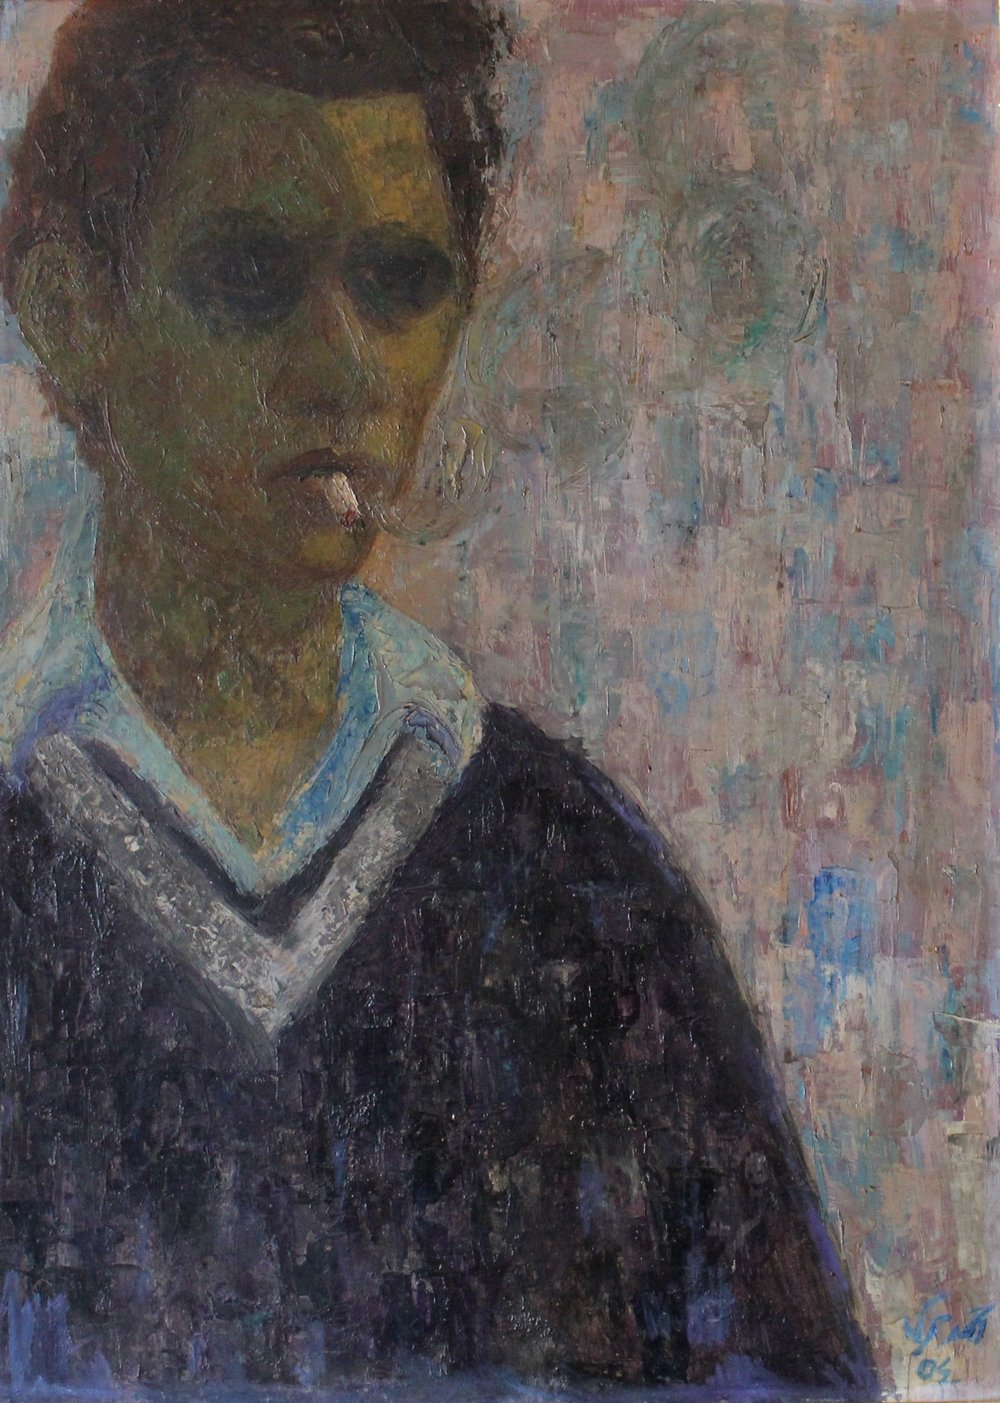 Ahmed_Morsi_Self_Portrait_1954.jpg